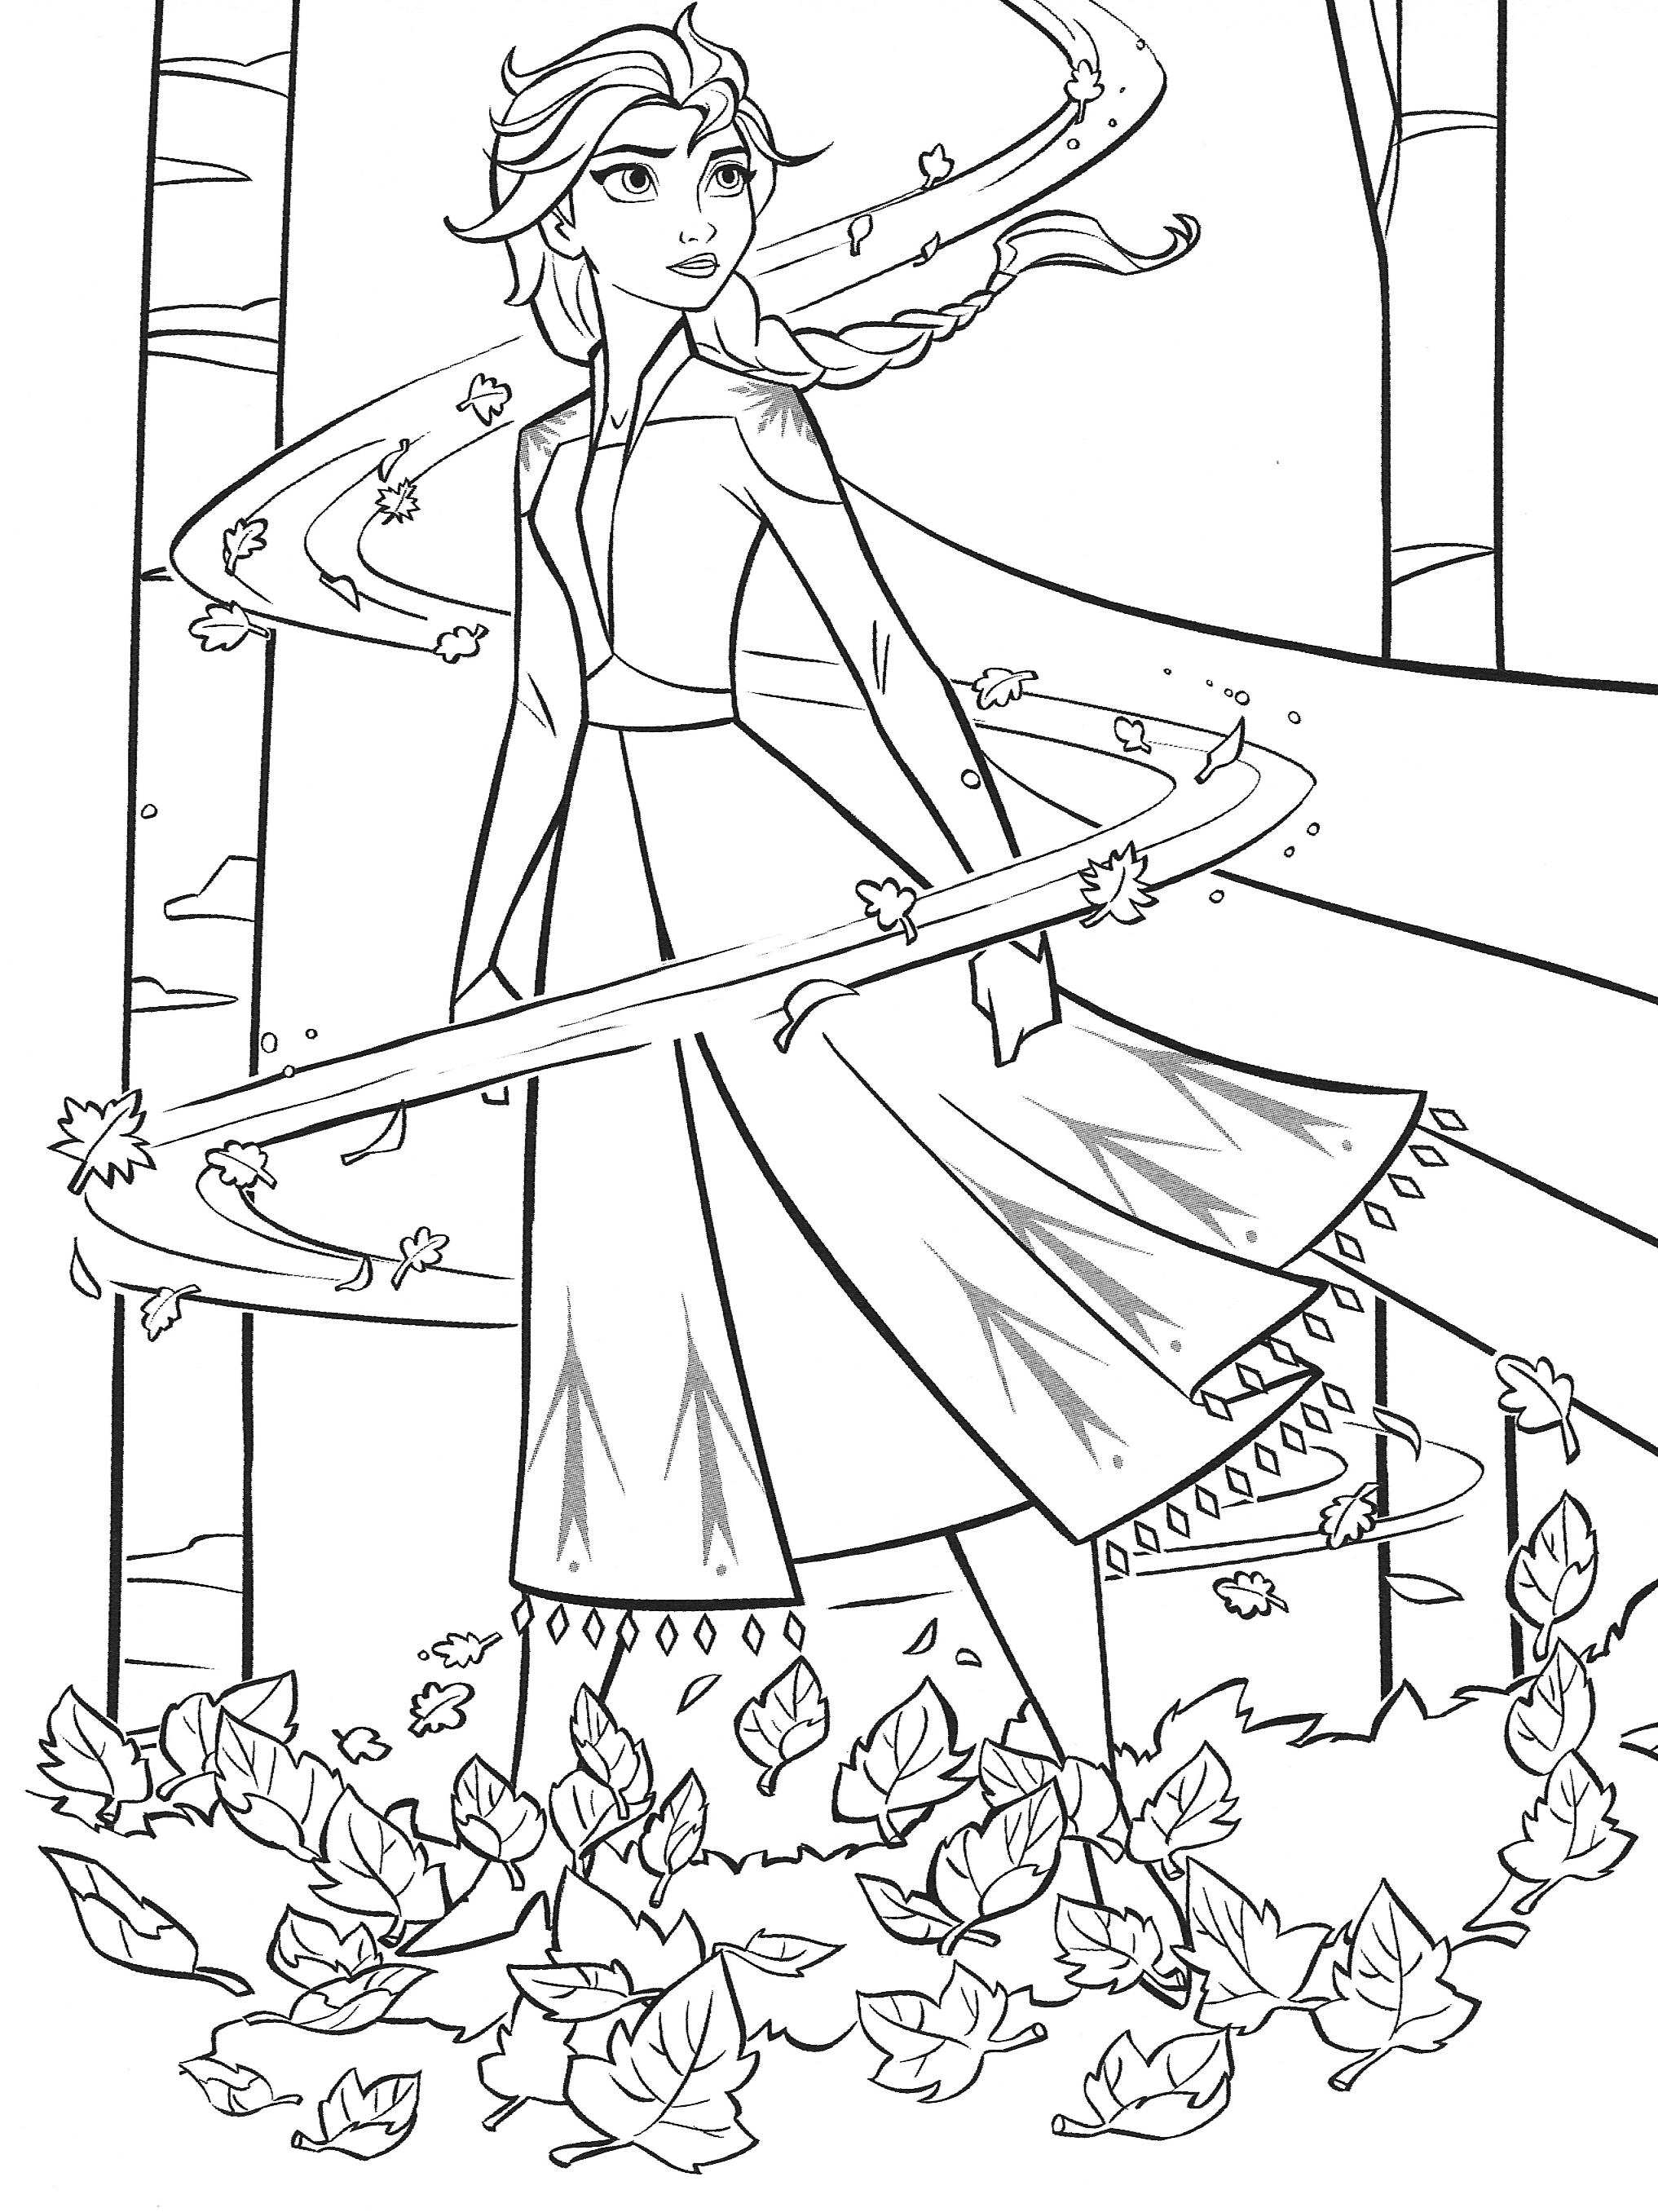 a coloring picture of frozen new frozen 2 coloring pages with elsa youloveitcom picture of frozen coloring a